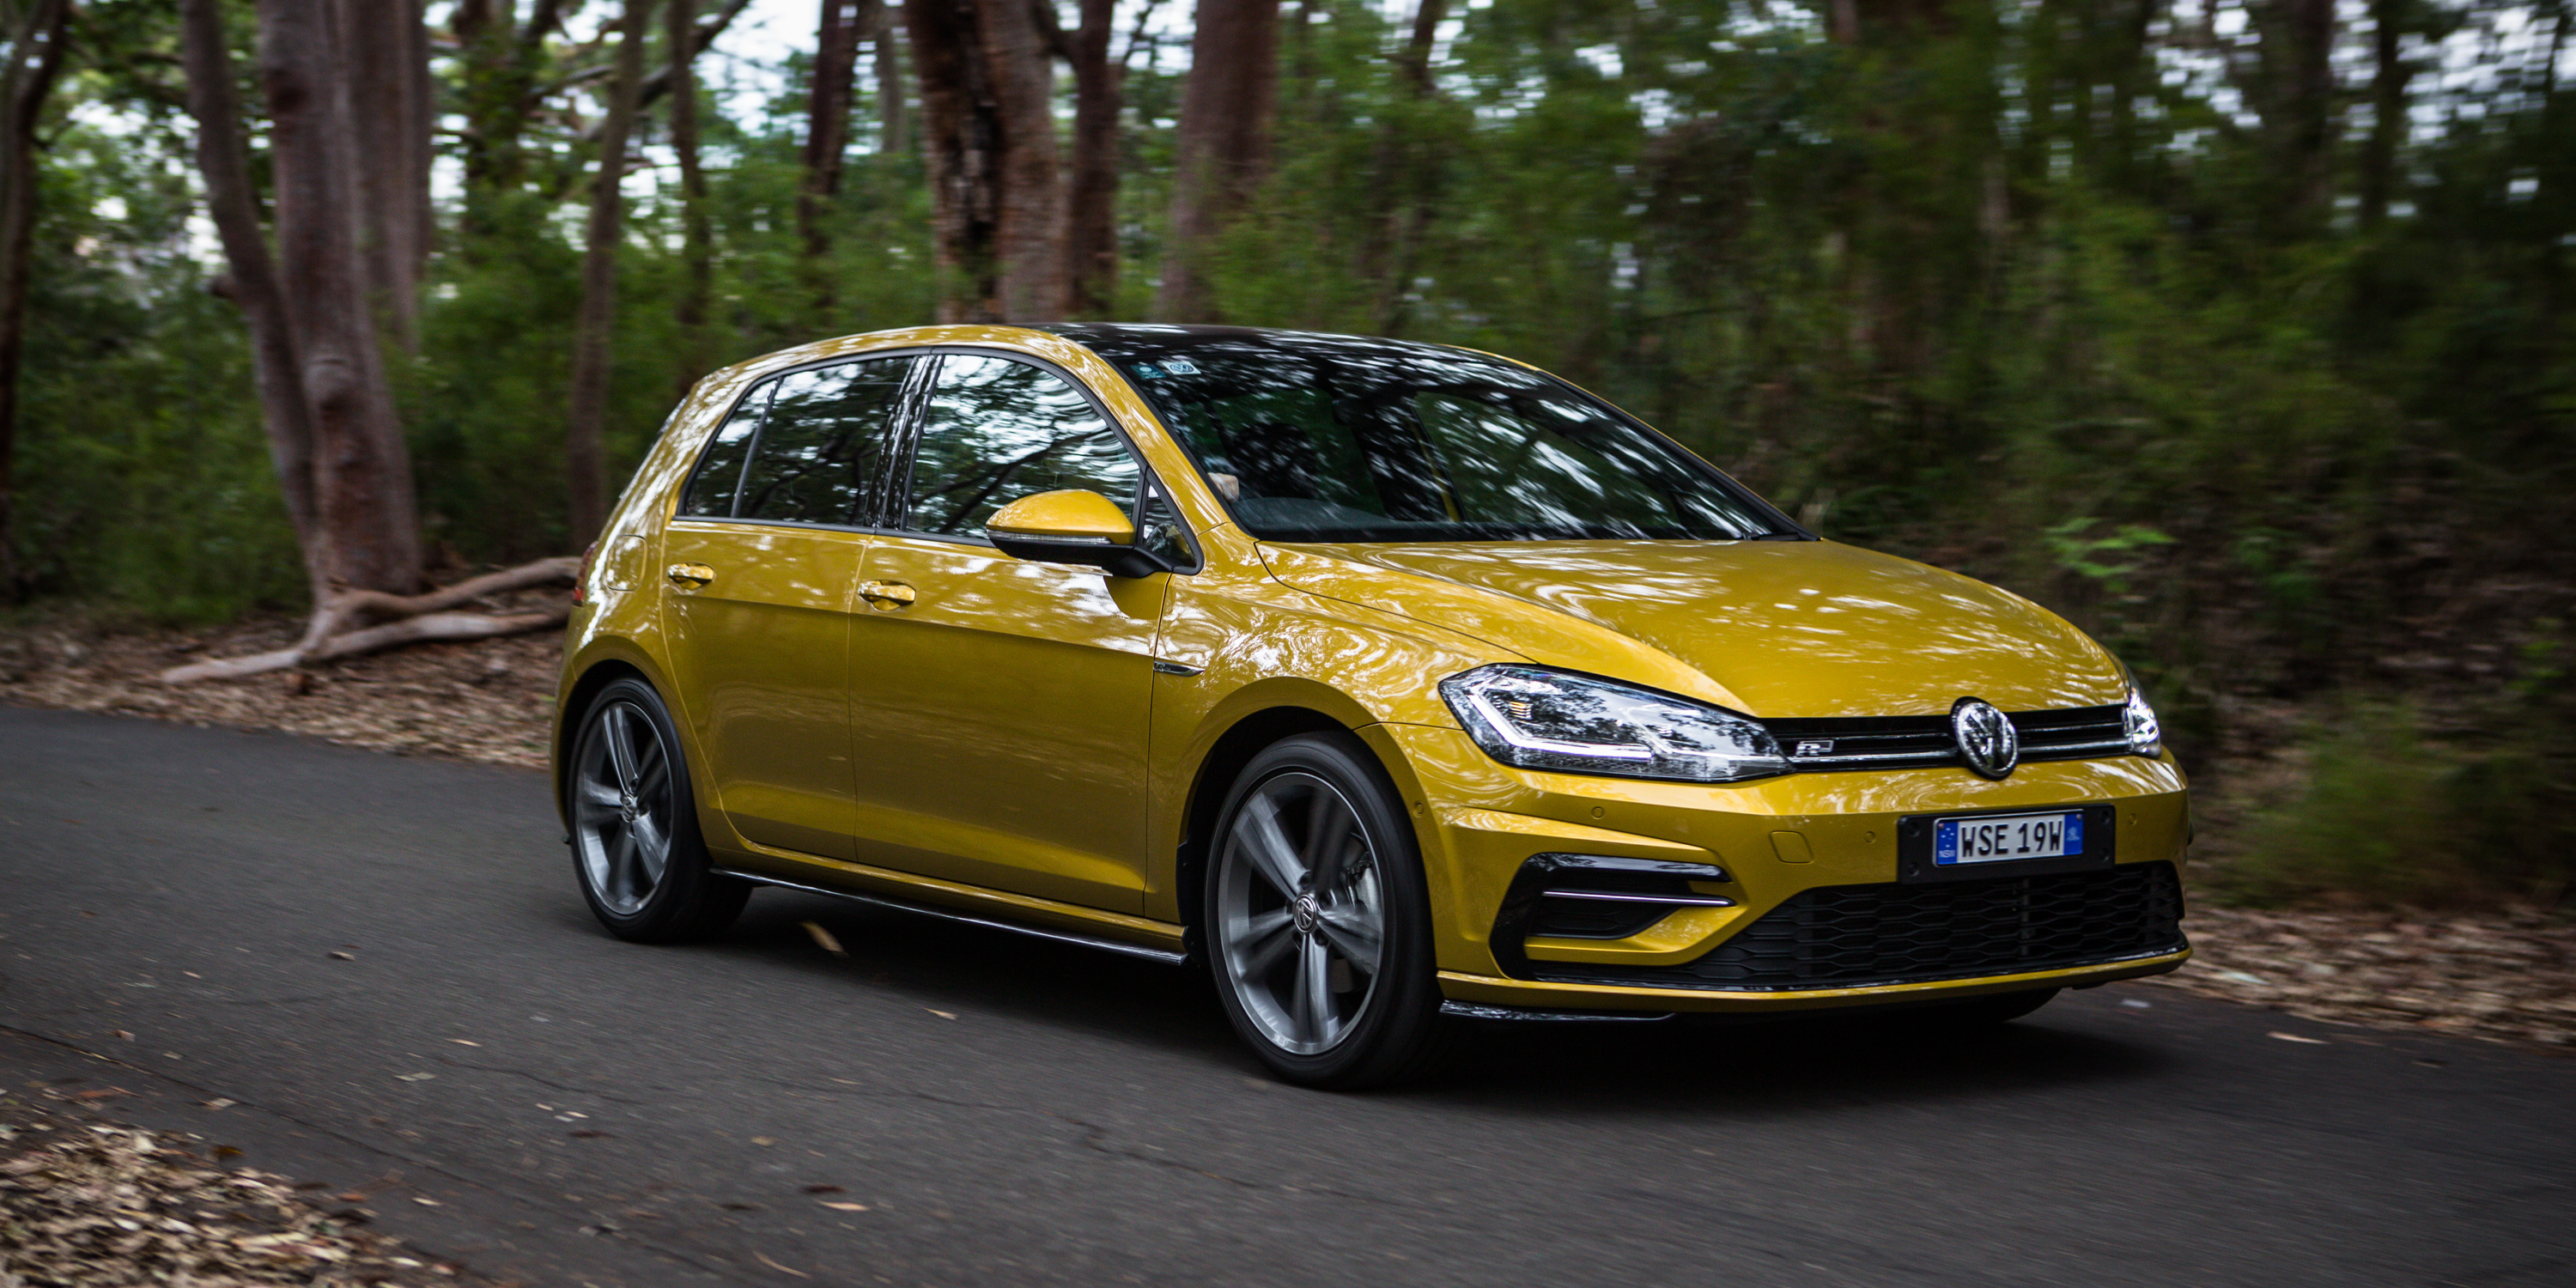 Volkswagen Golf photo 179296